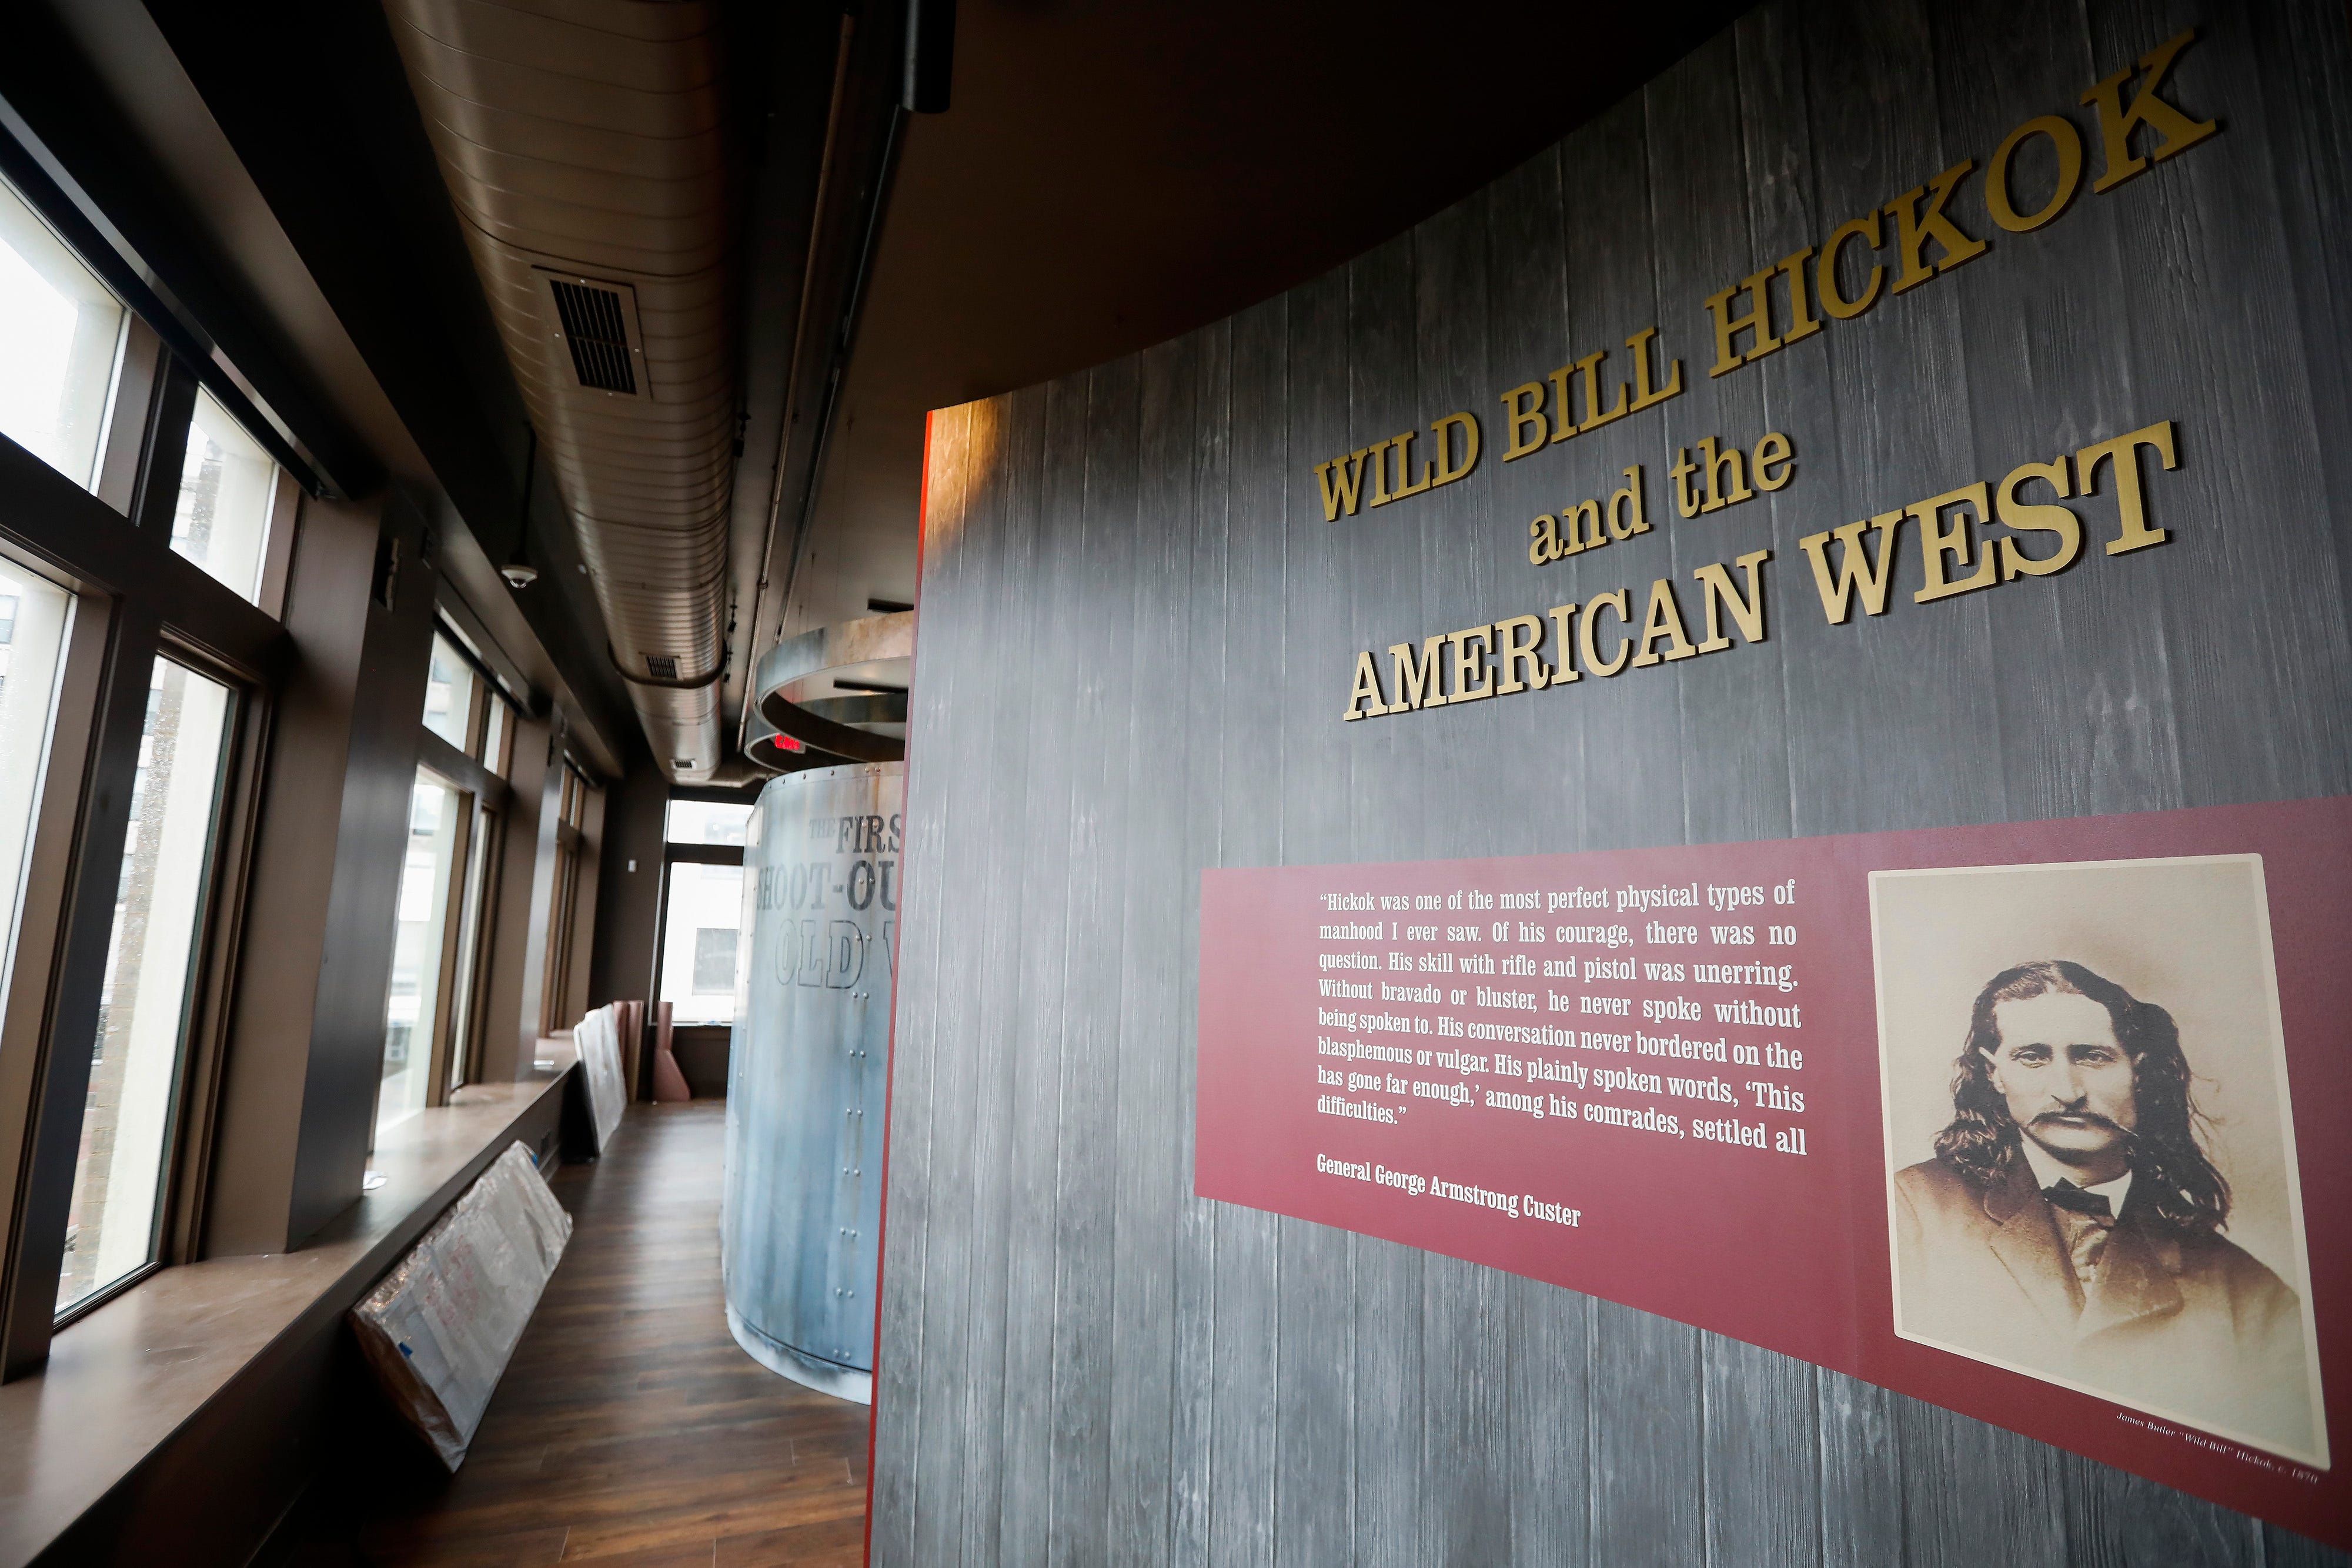 The entrance to the section dedicated to Wild Bill Hickok and the American West at the expanded History Museum on the Square.